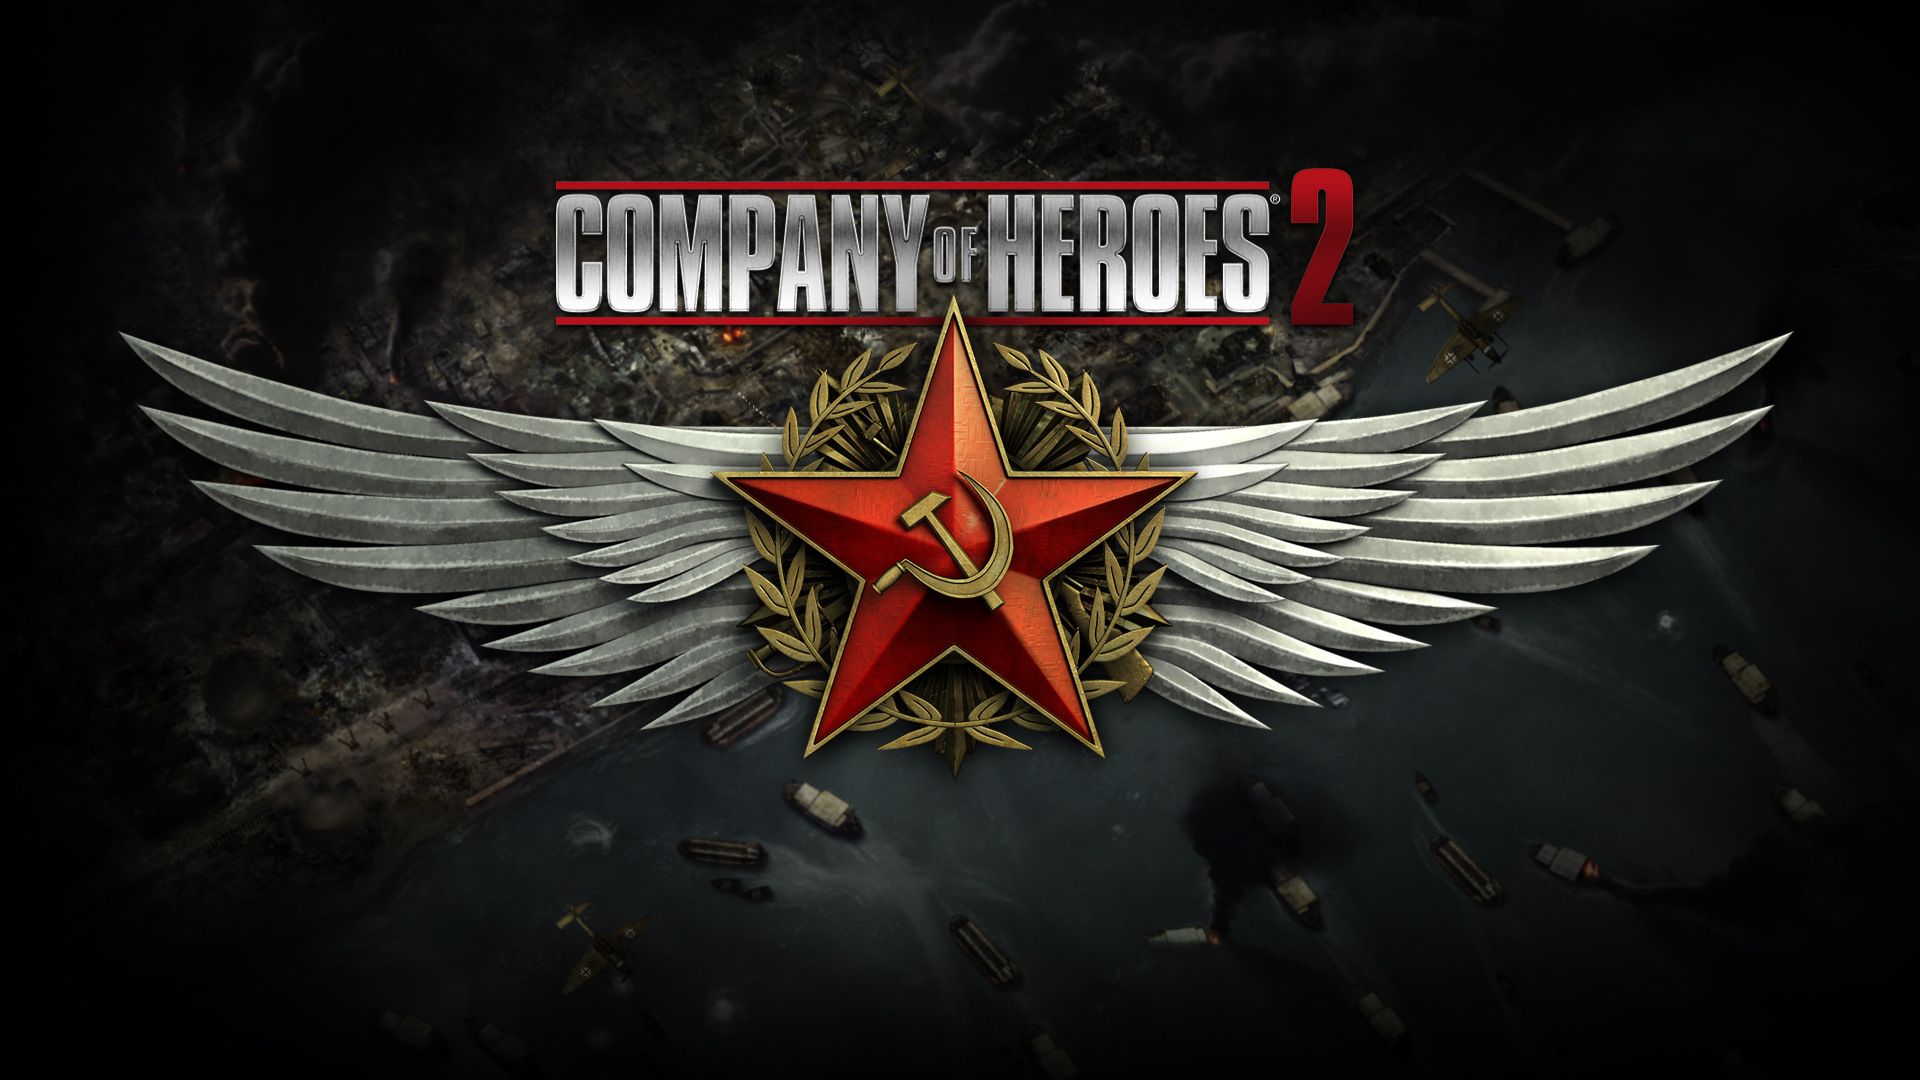 Company of Heroes Franchise Marches Onto 'Two Fronts' With Brand New Updates and DLC Today